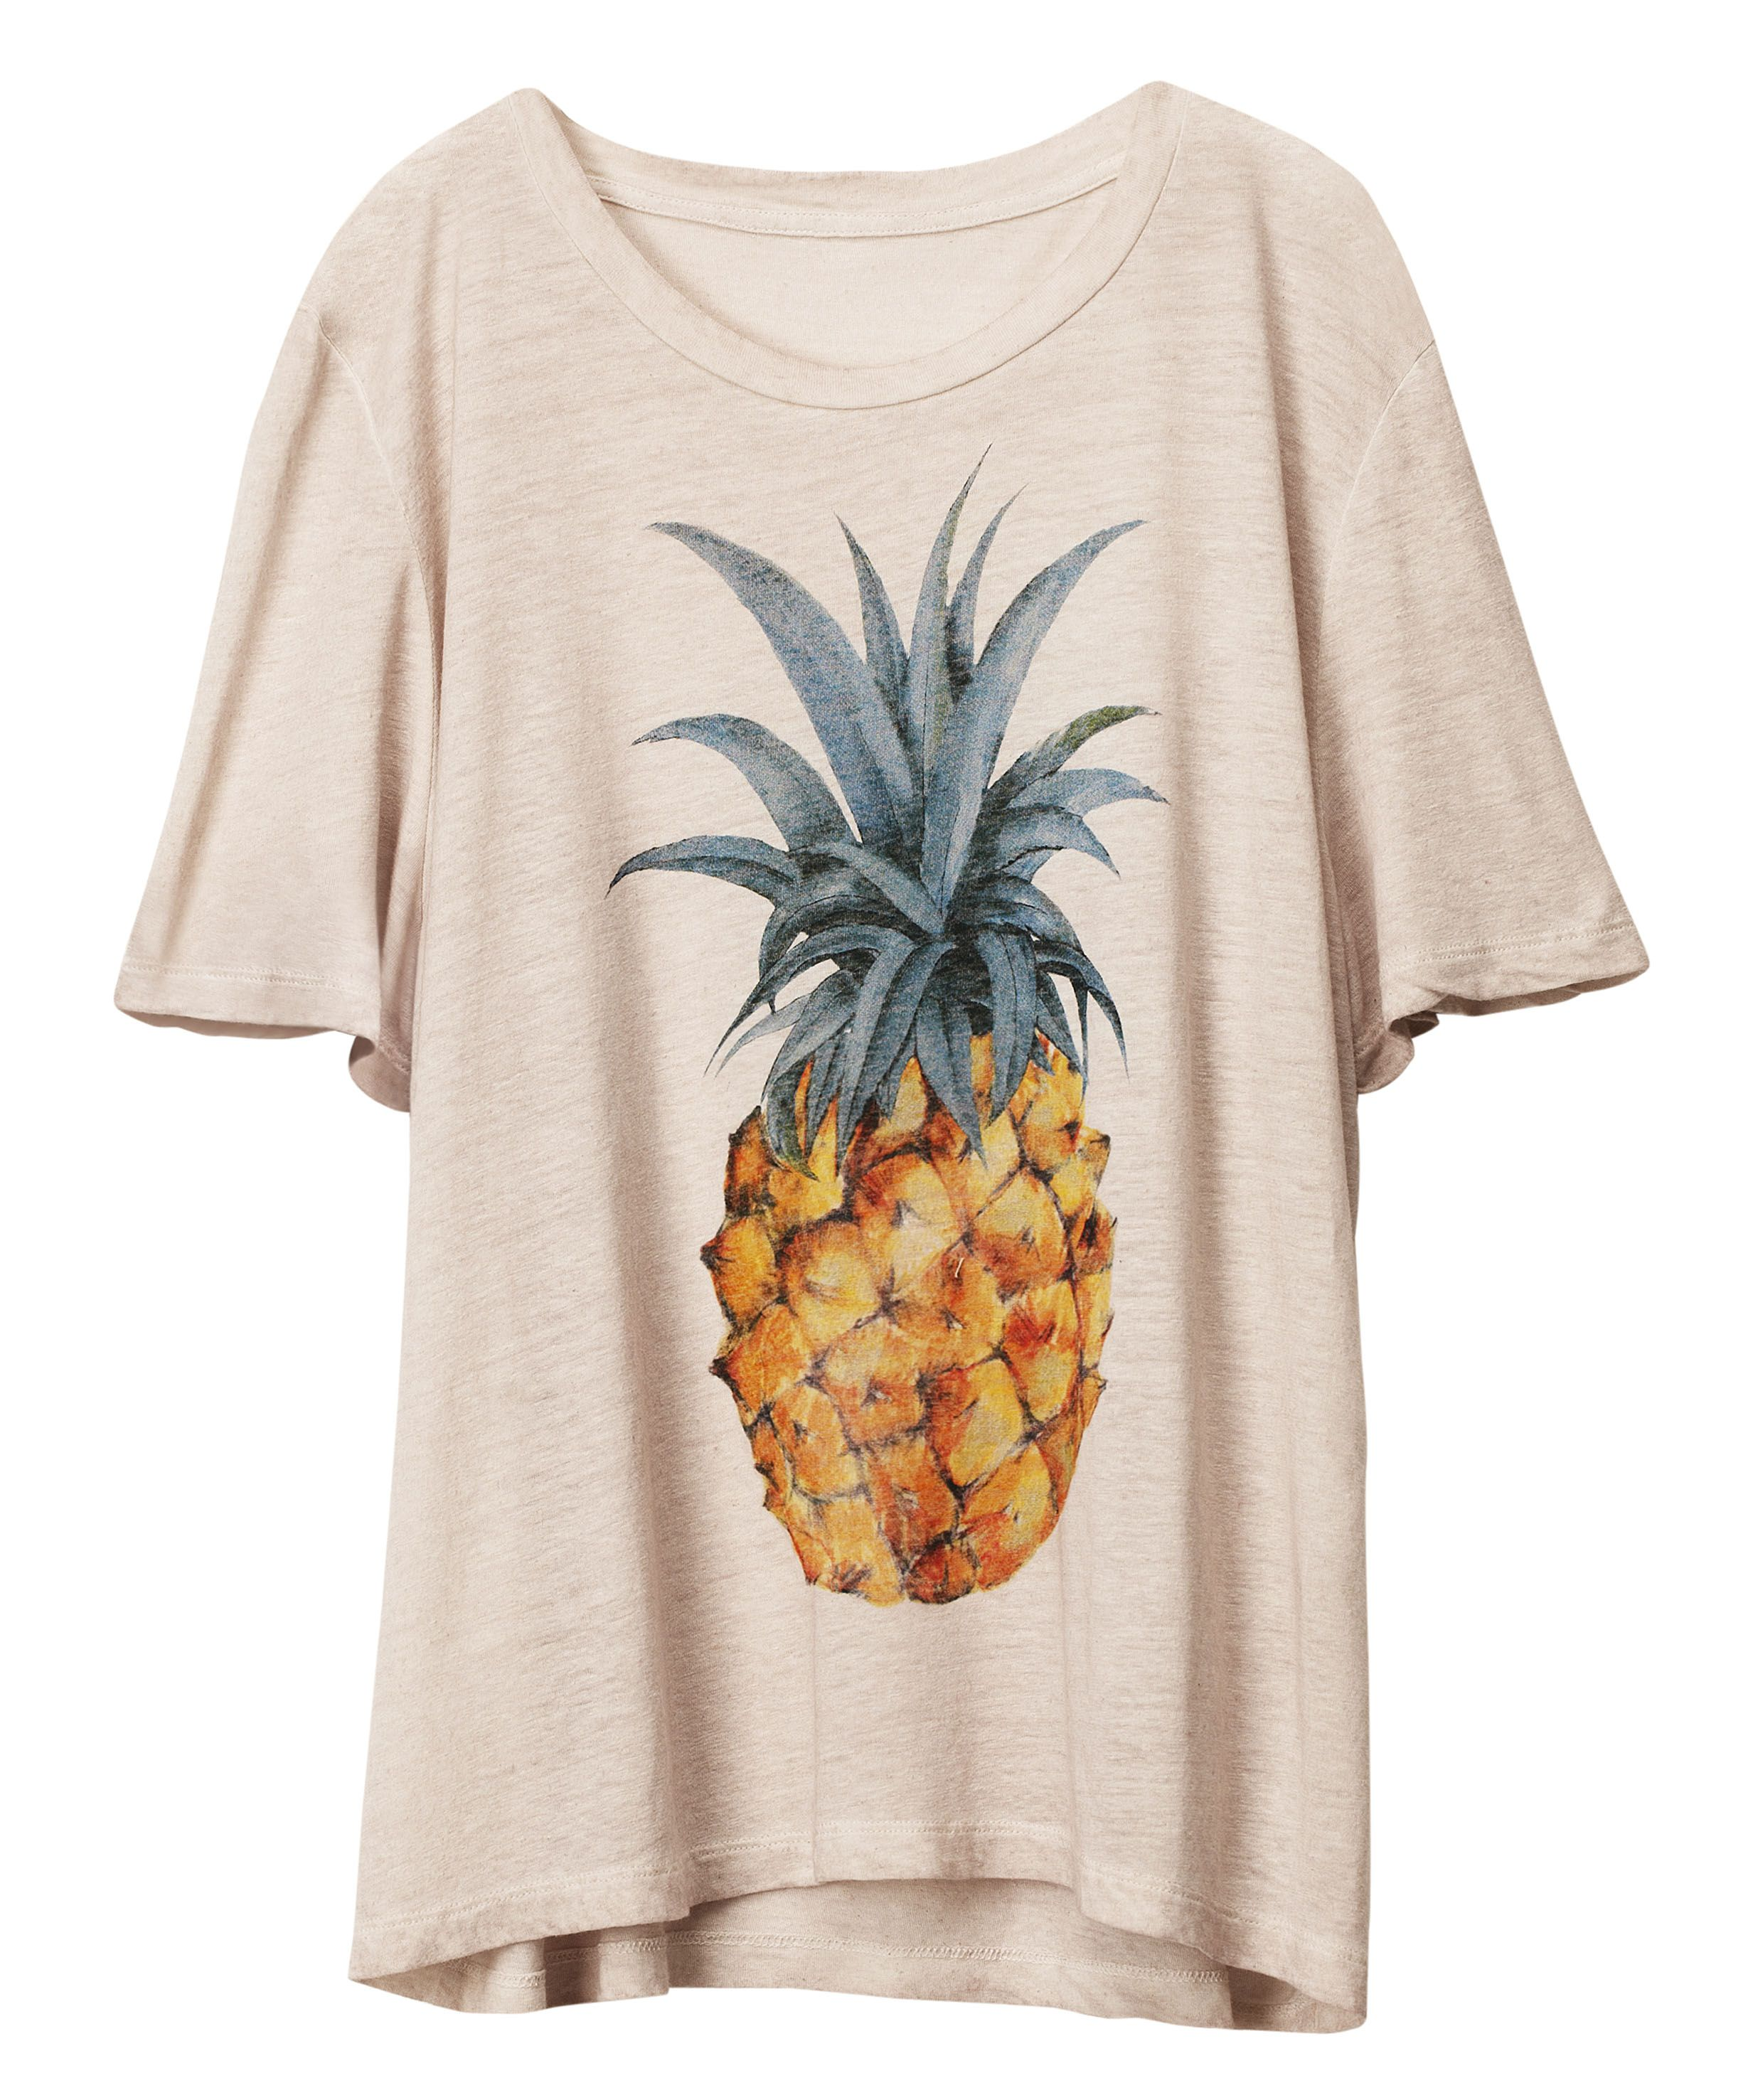 hm pineapple t shirt pineapple motifs are one of my. Black Bedroom Furniture Sets. Home Design Ideas